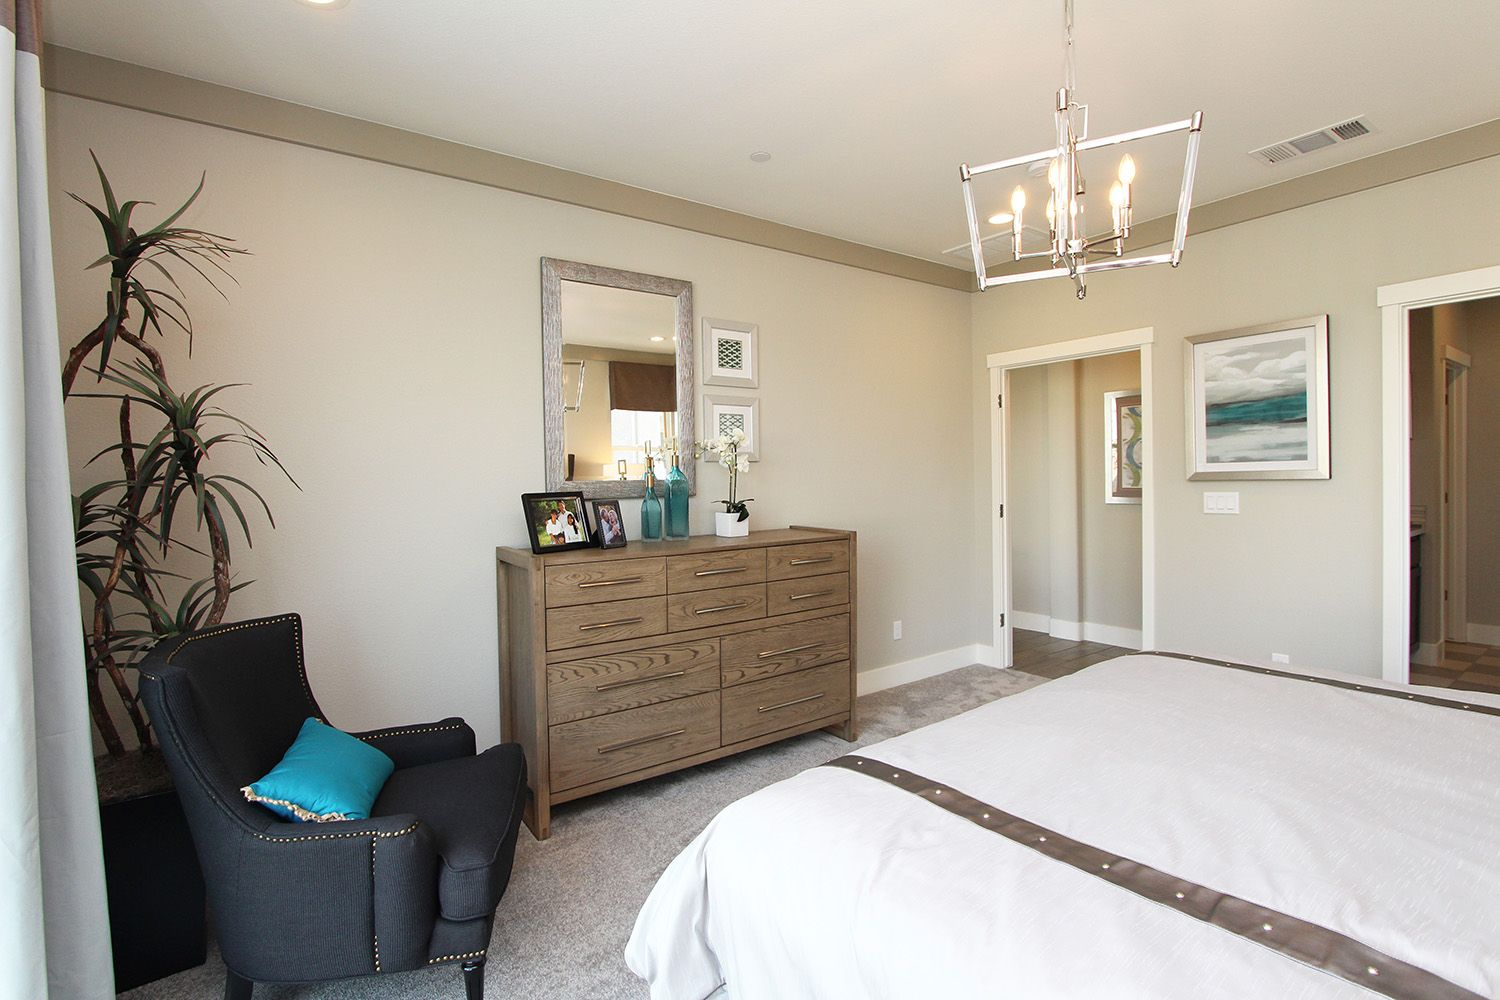 Bedroom featured in The Avila By Anderson Homes in Merced, CA